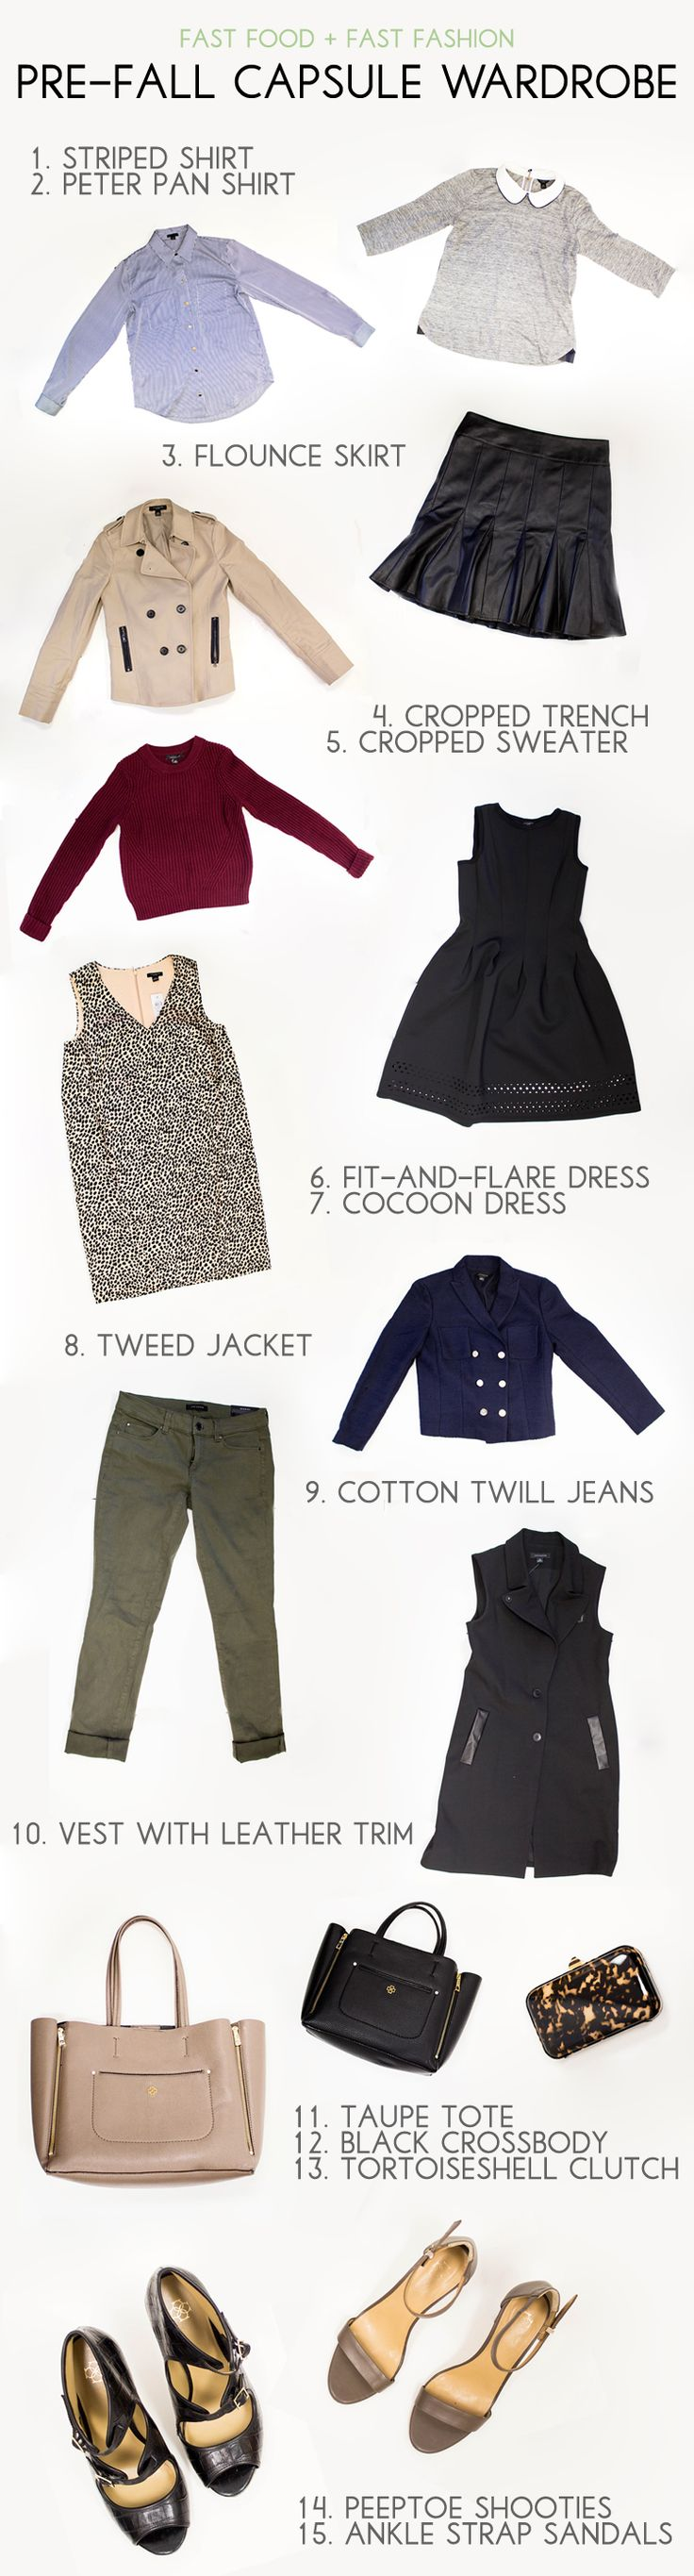 Loving How Fast Food + Fast Fashion Styles These Ann Taylor Pieces into FIFTEEN Separate Looks. Check it out on her blog.